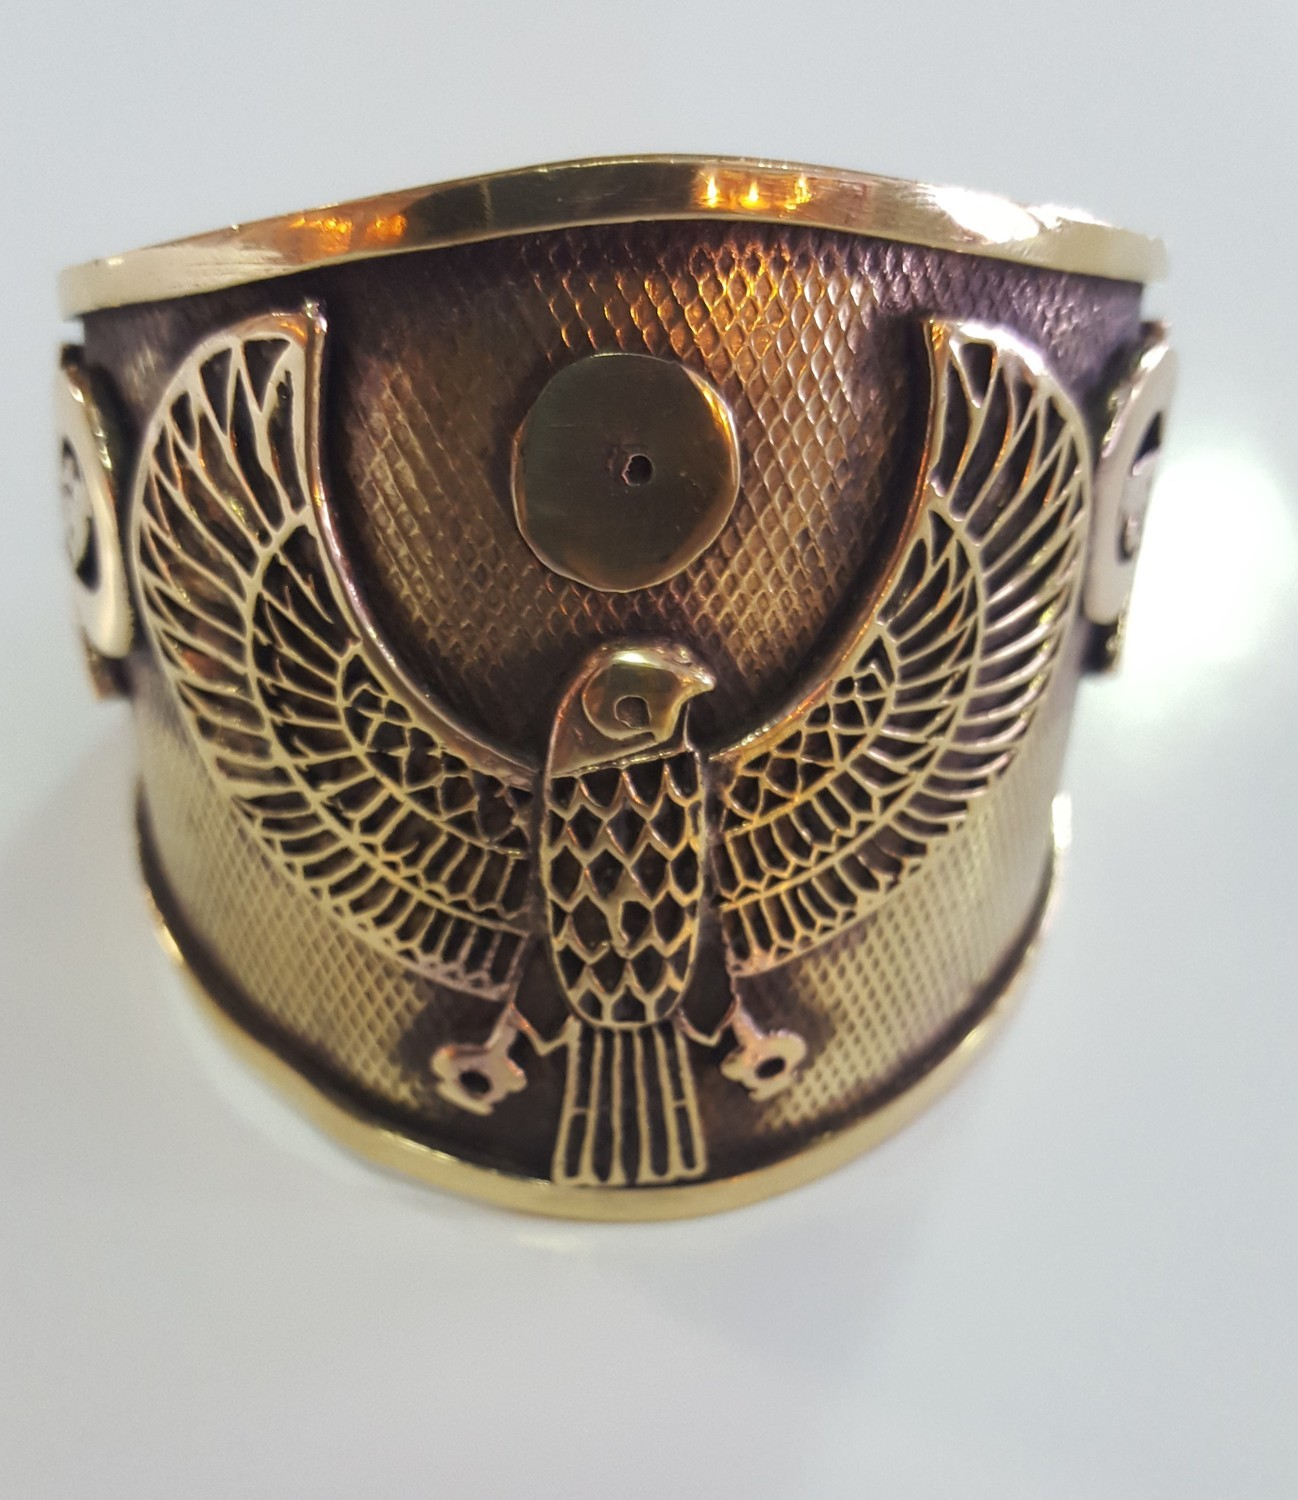 Heru bracelet with Eye of Heru